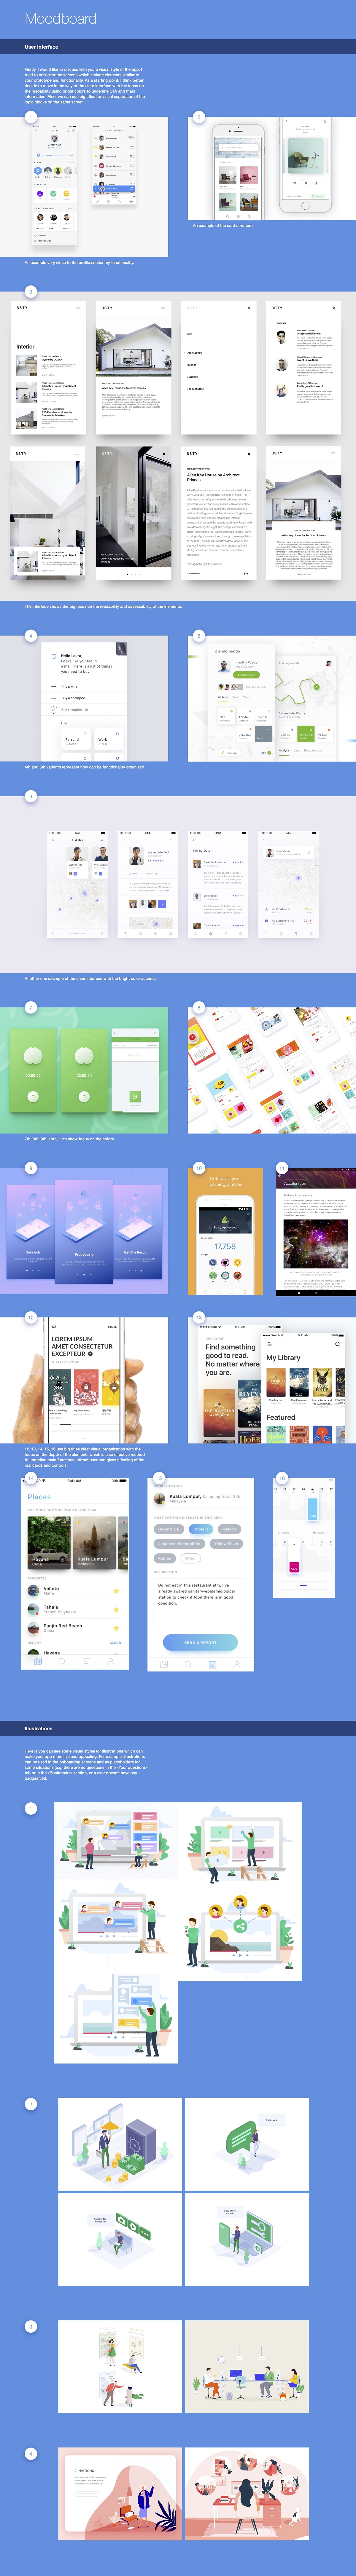 moodboard for UI design project